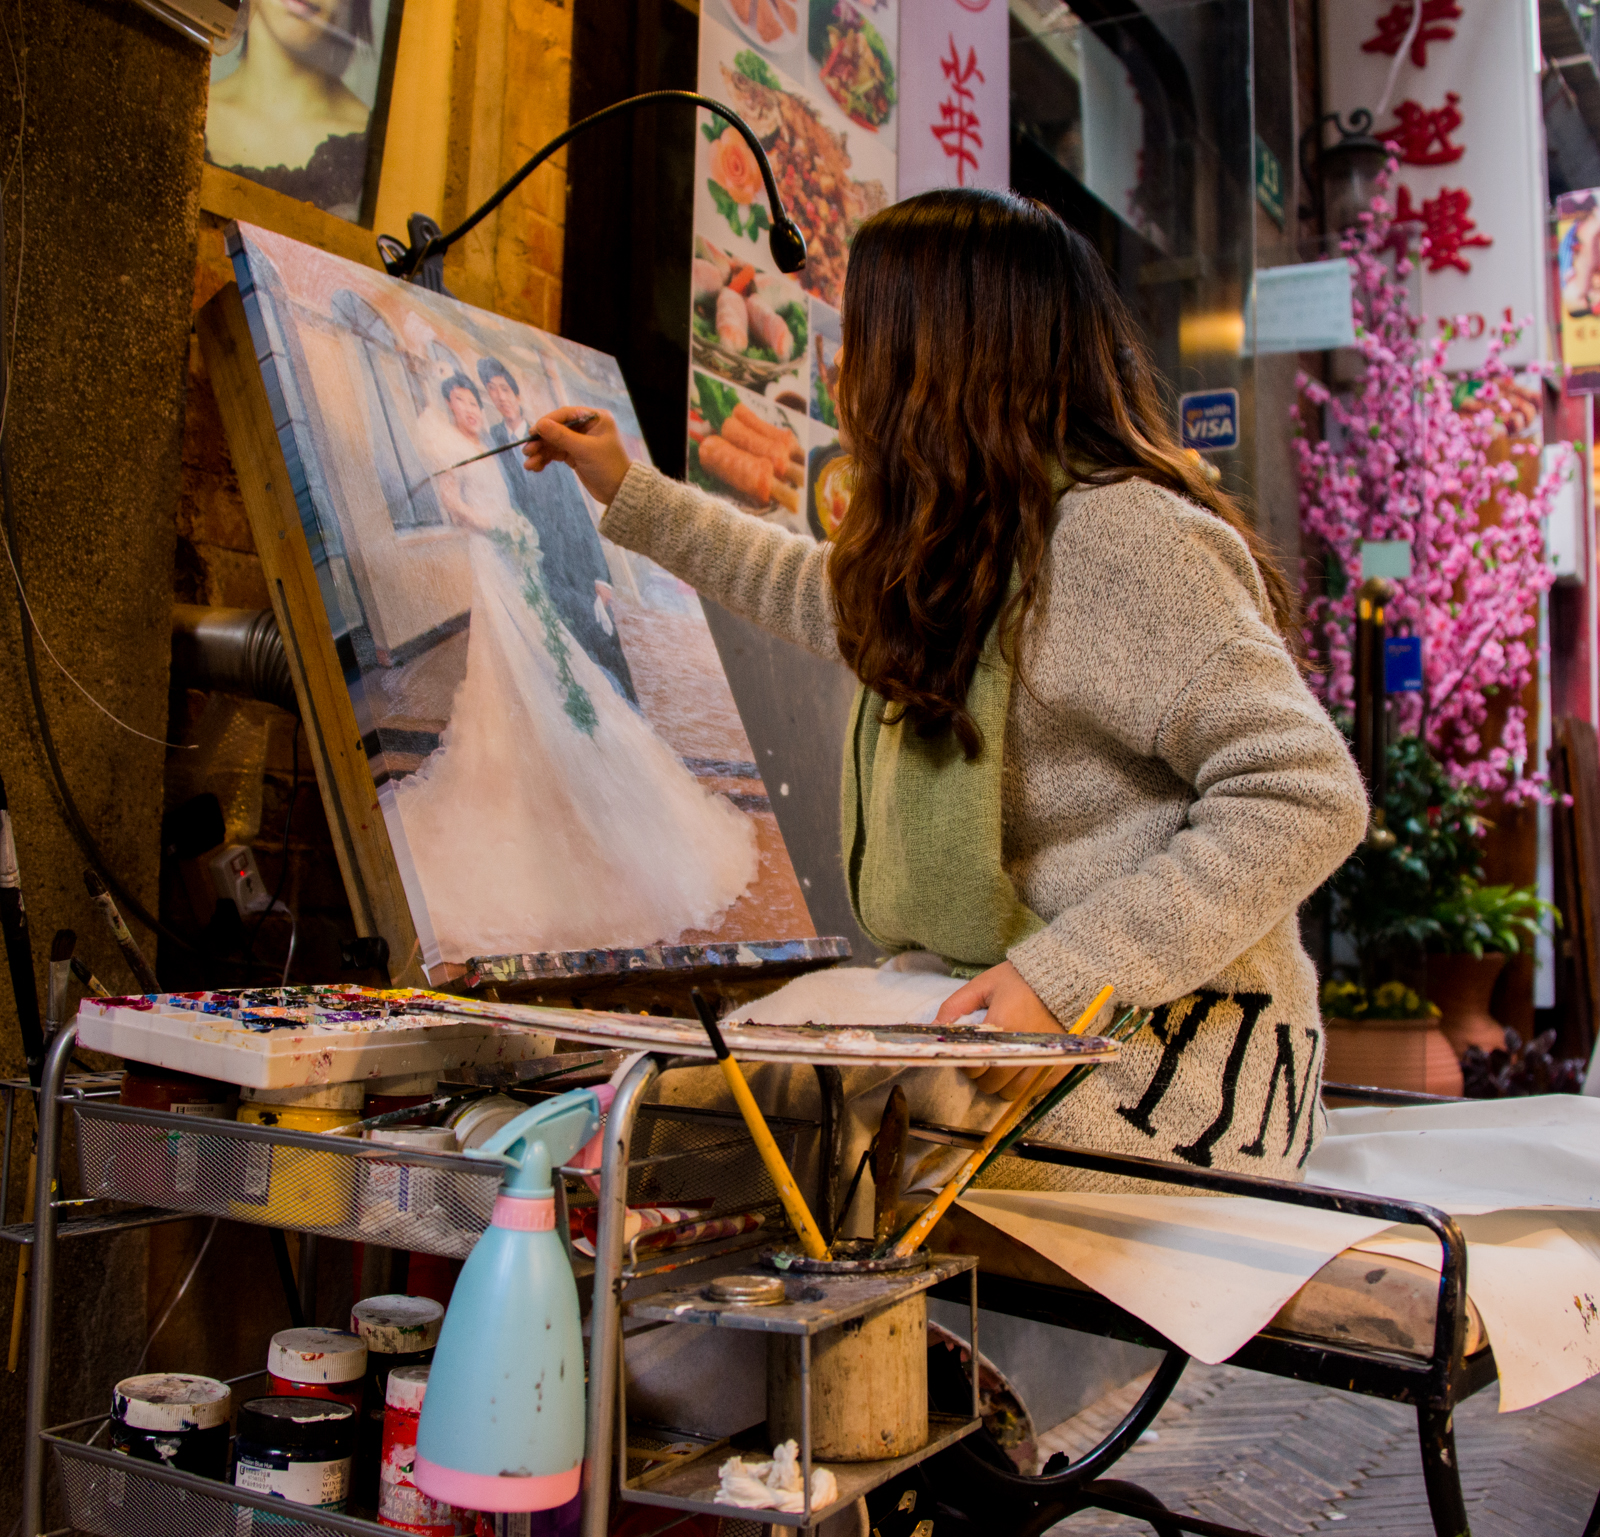 Tucked away in a small enclave in Shanghai is a small network of alleyways called 'The French Concession'. This area is home to craft beers, European style cuisine and artists of all stripes. This girl was finishing off a photo-realistic painting, so realistic that it makes you wonder if you should just stick with the photograph! I of course then took a photo of it to restore balance to an otherwise crazy situation.